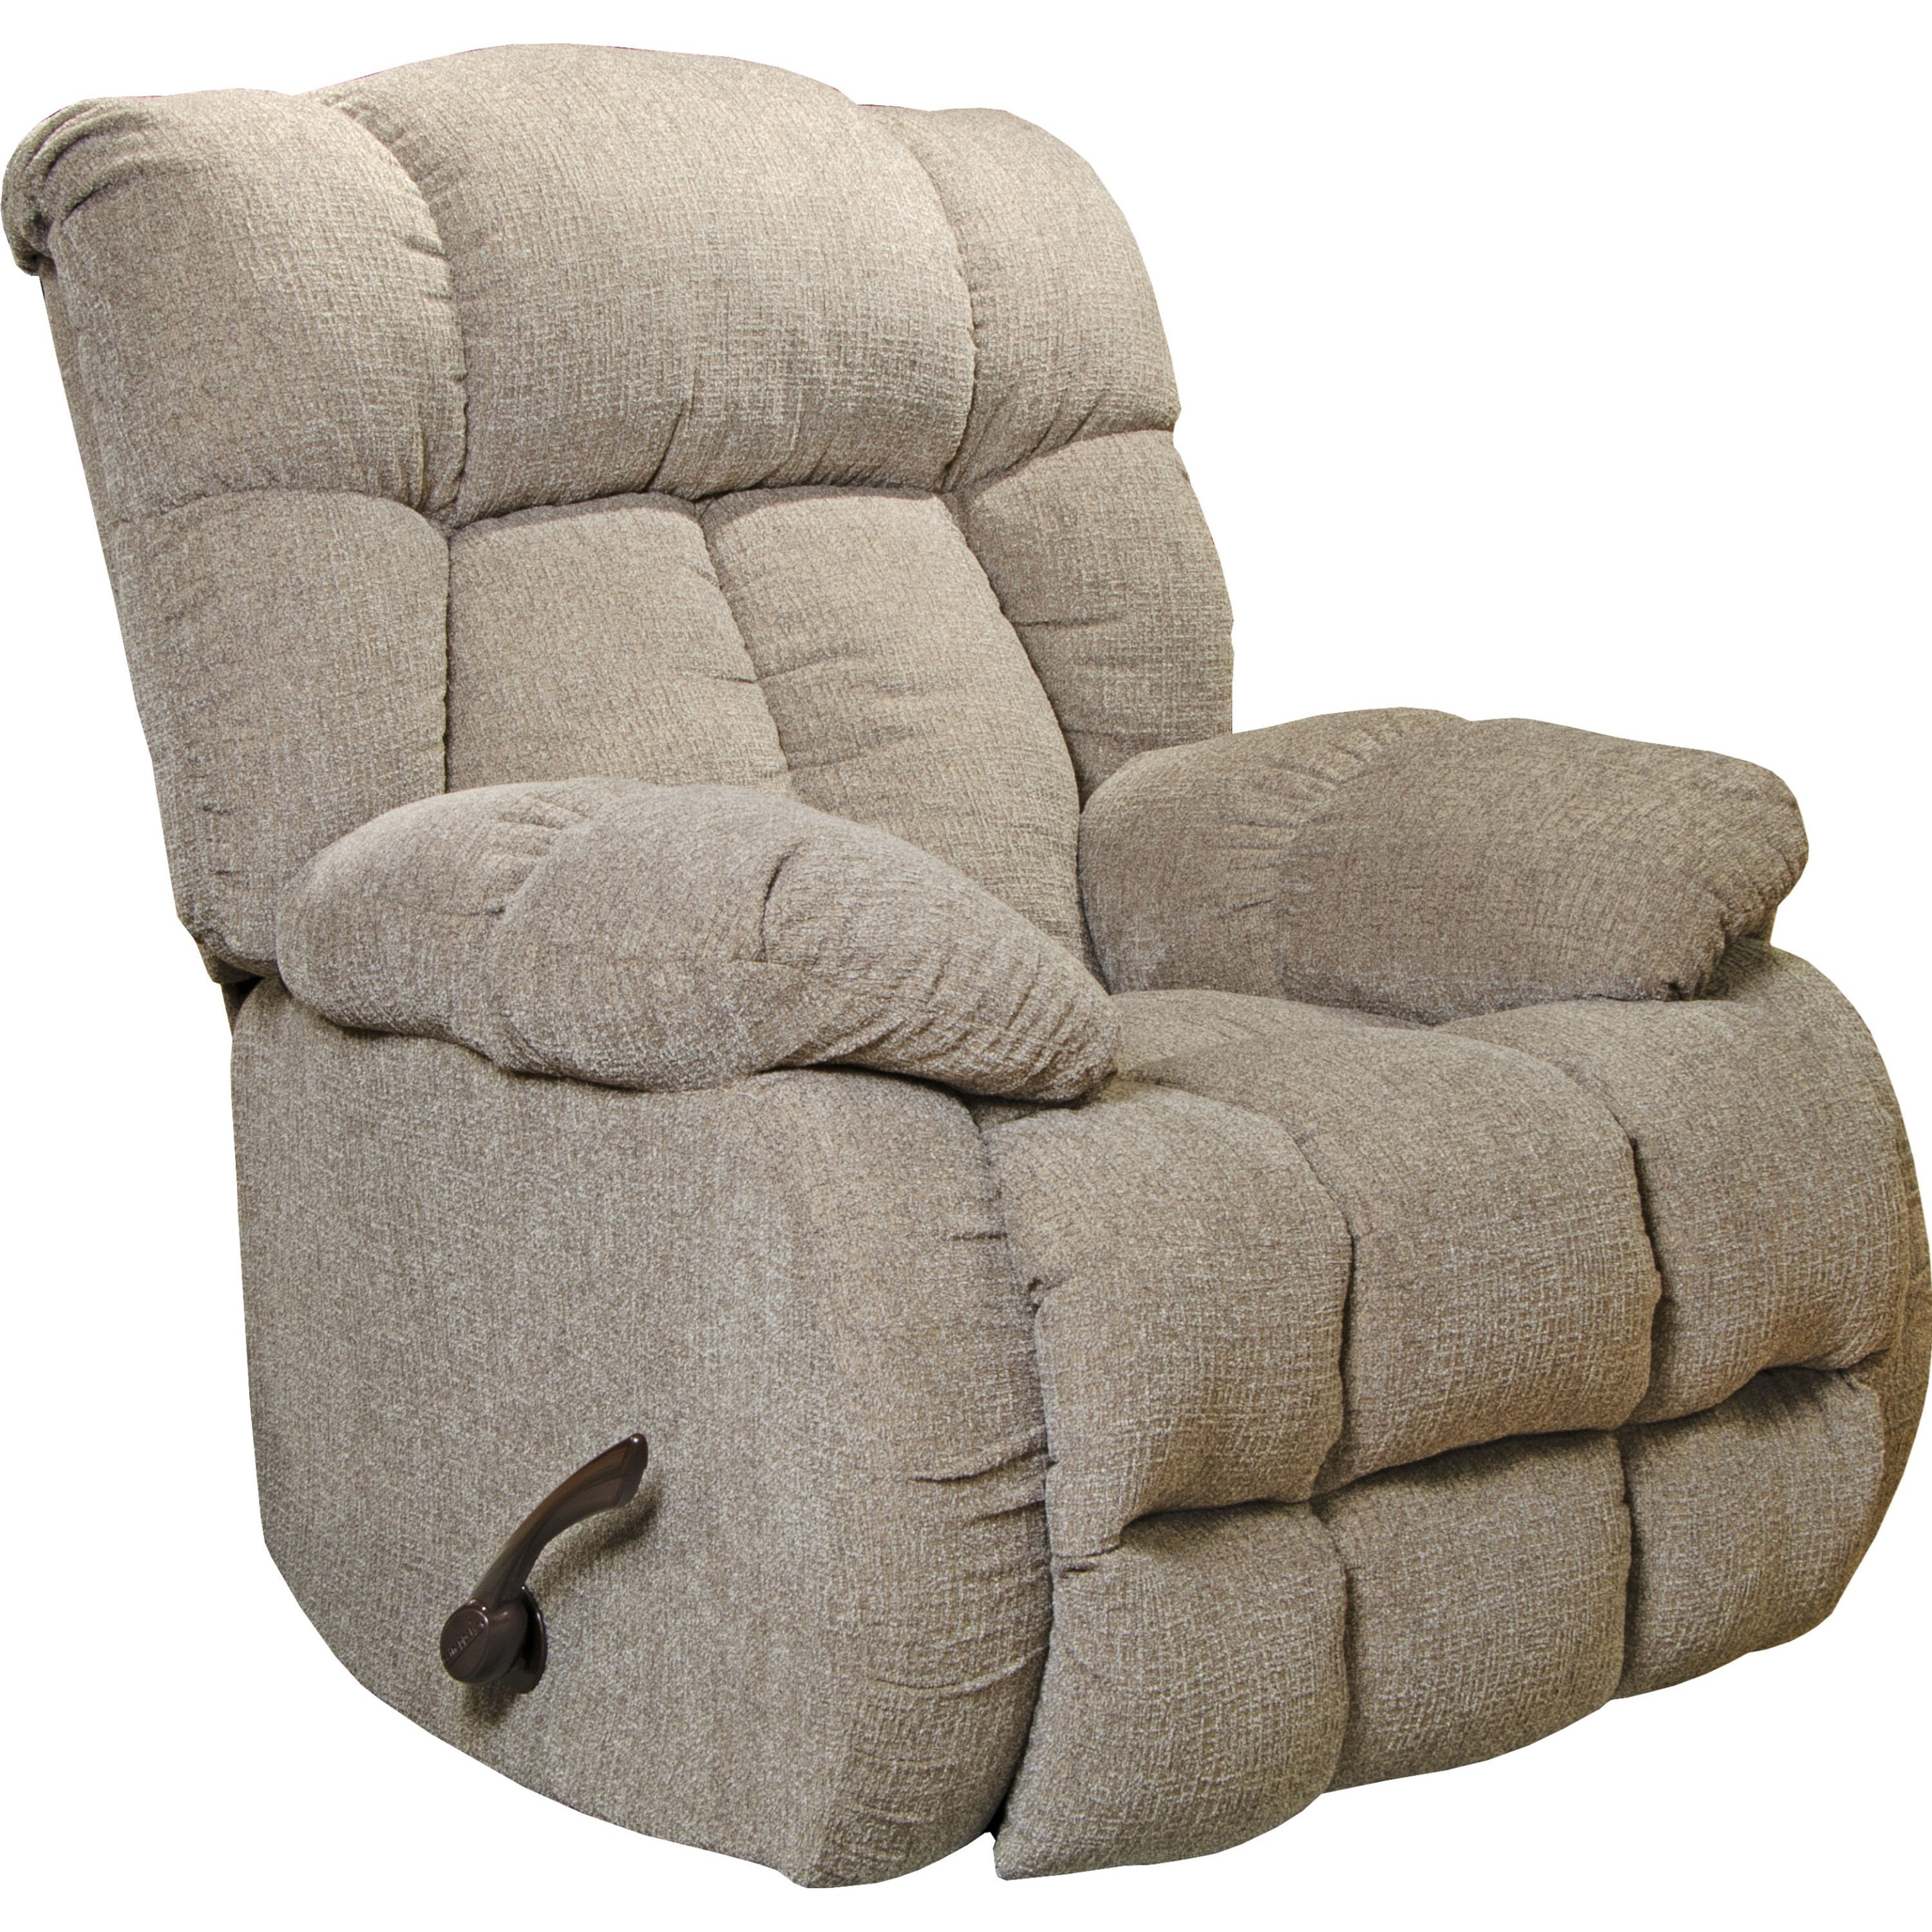 Catnapper Motion Chairs And Recliners Brody Rocker Recliner Intended For Gibson Swivel Cuddler Chairs (View 4 of 25)